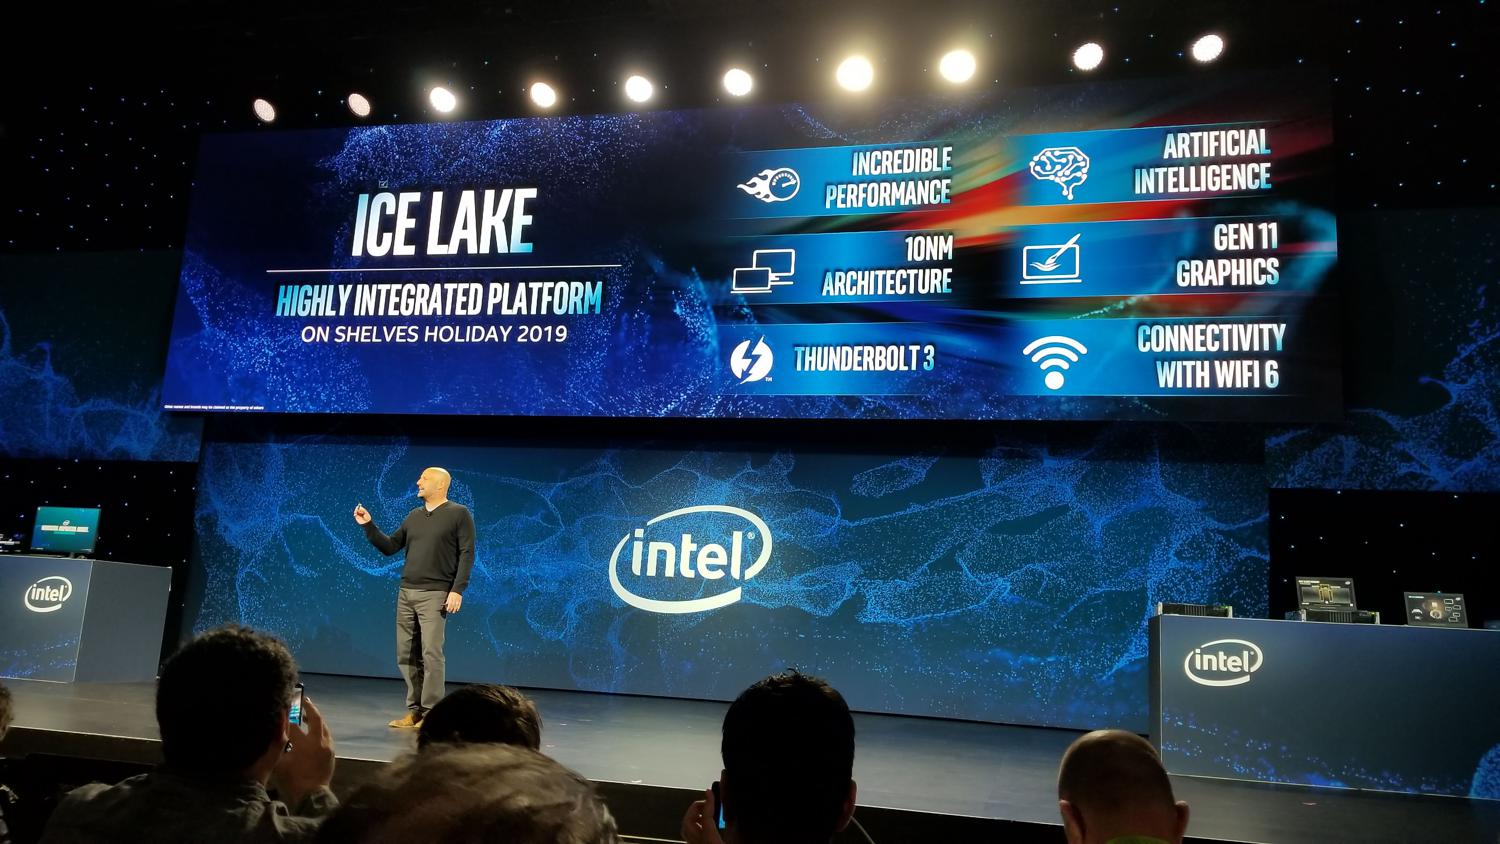 Intel Reveals Long-Awaited Ice Lake 10nm CPUs At CES 2019